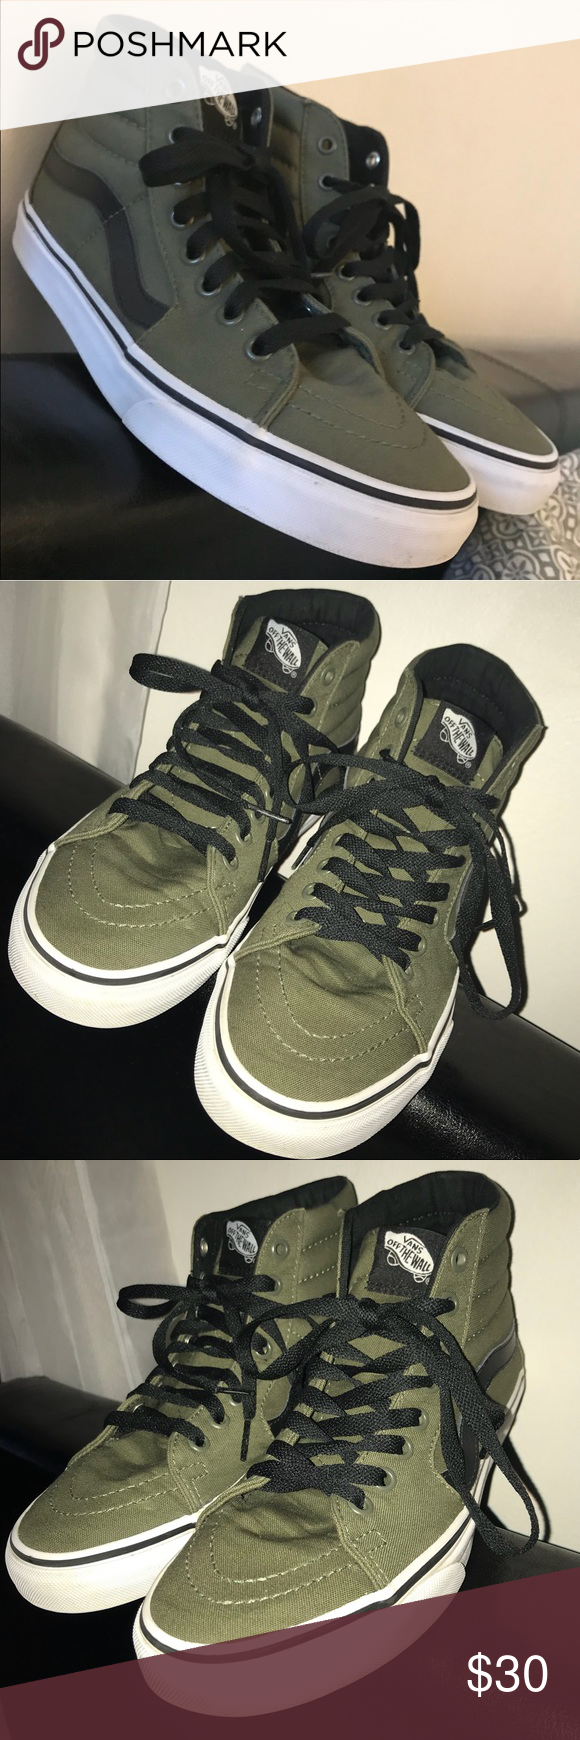 78d9d9a67c Olive green high top Vans women s sz 8 These unisex Vans are gently used  and in great condition. Women s size 8